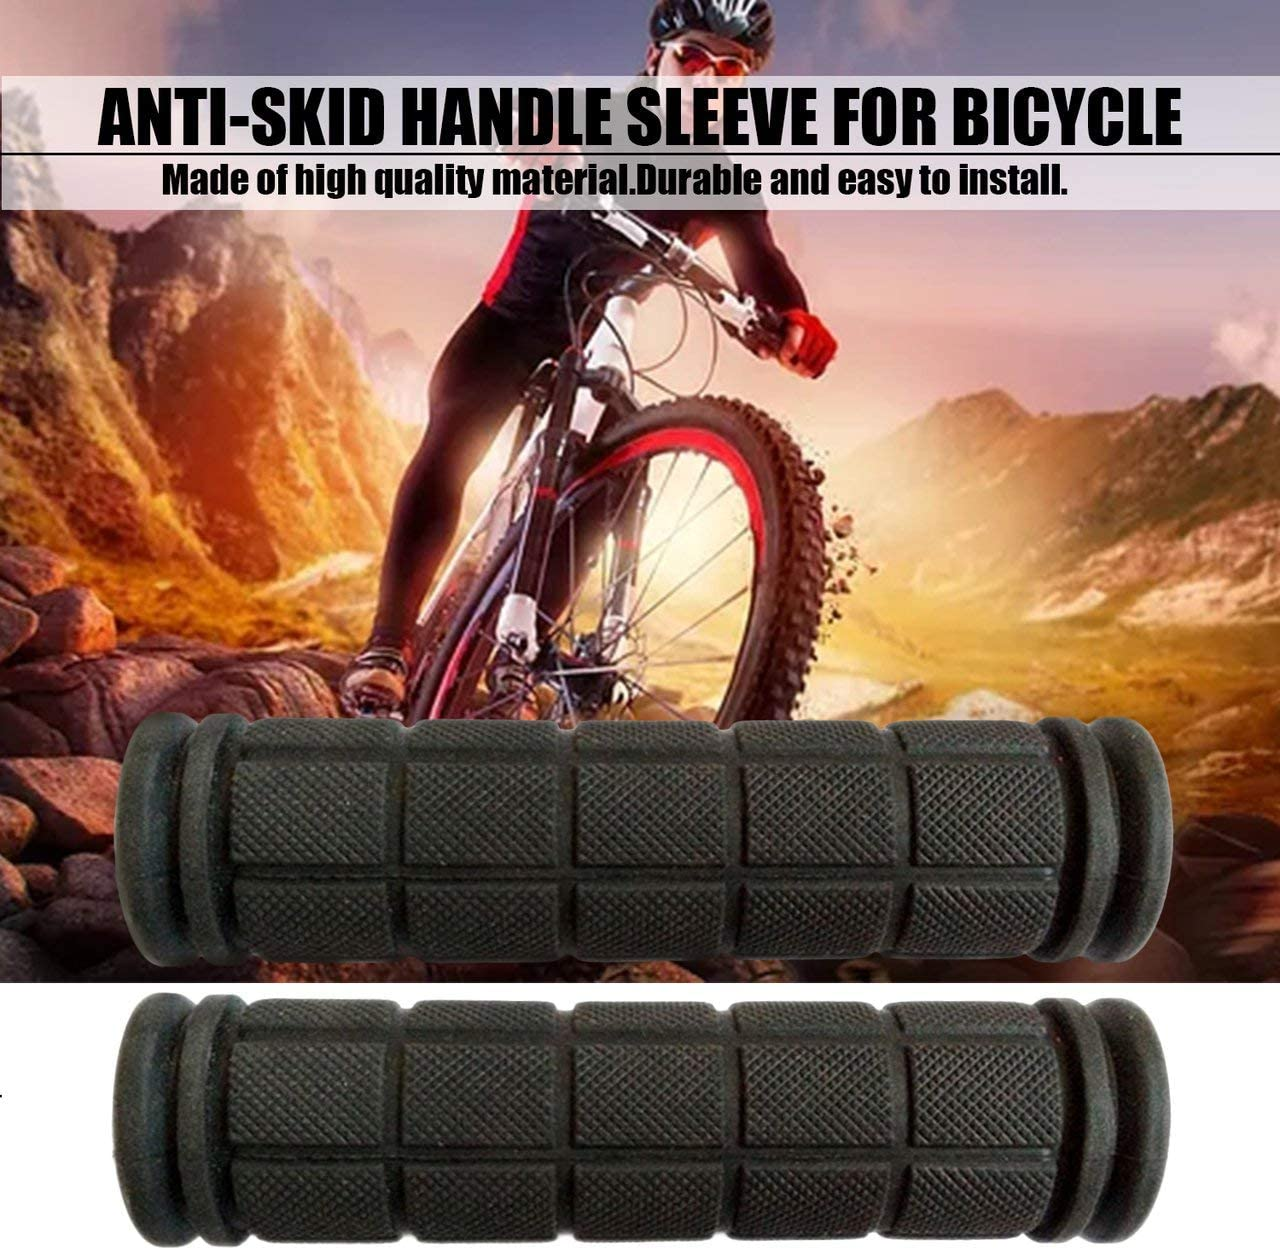 Color:black Garciakia 1 Pair Universal Bike Bicycle Handlebar Cover Grips Anti-slip Soft Rubber Handlebar Cover Cycling Accessories